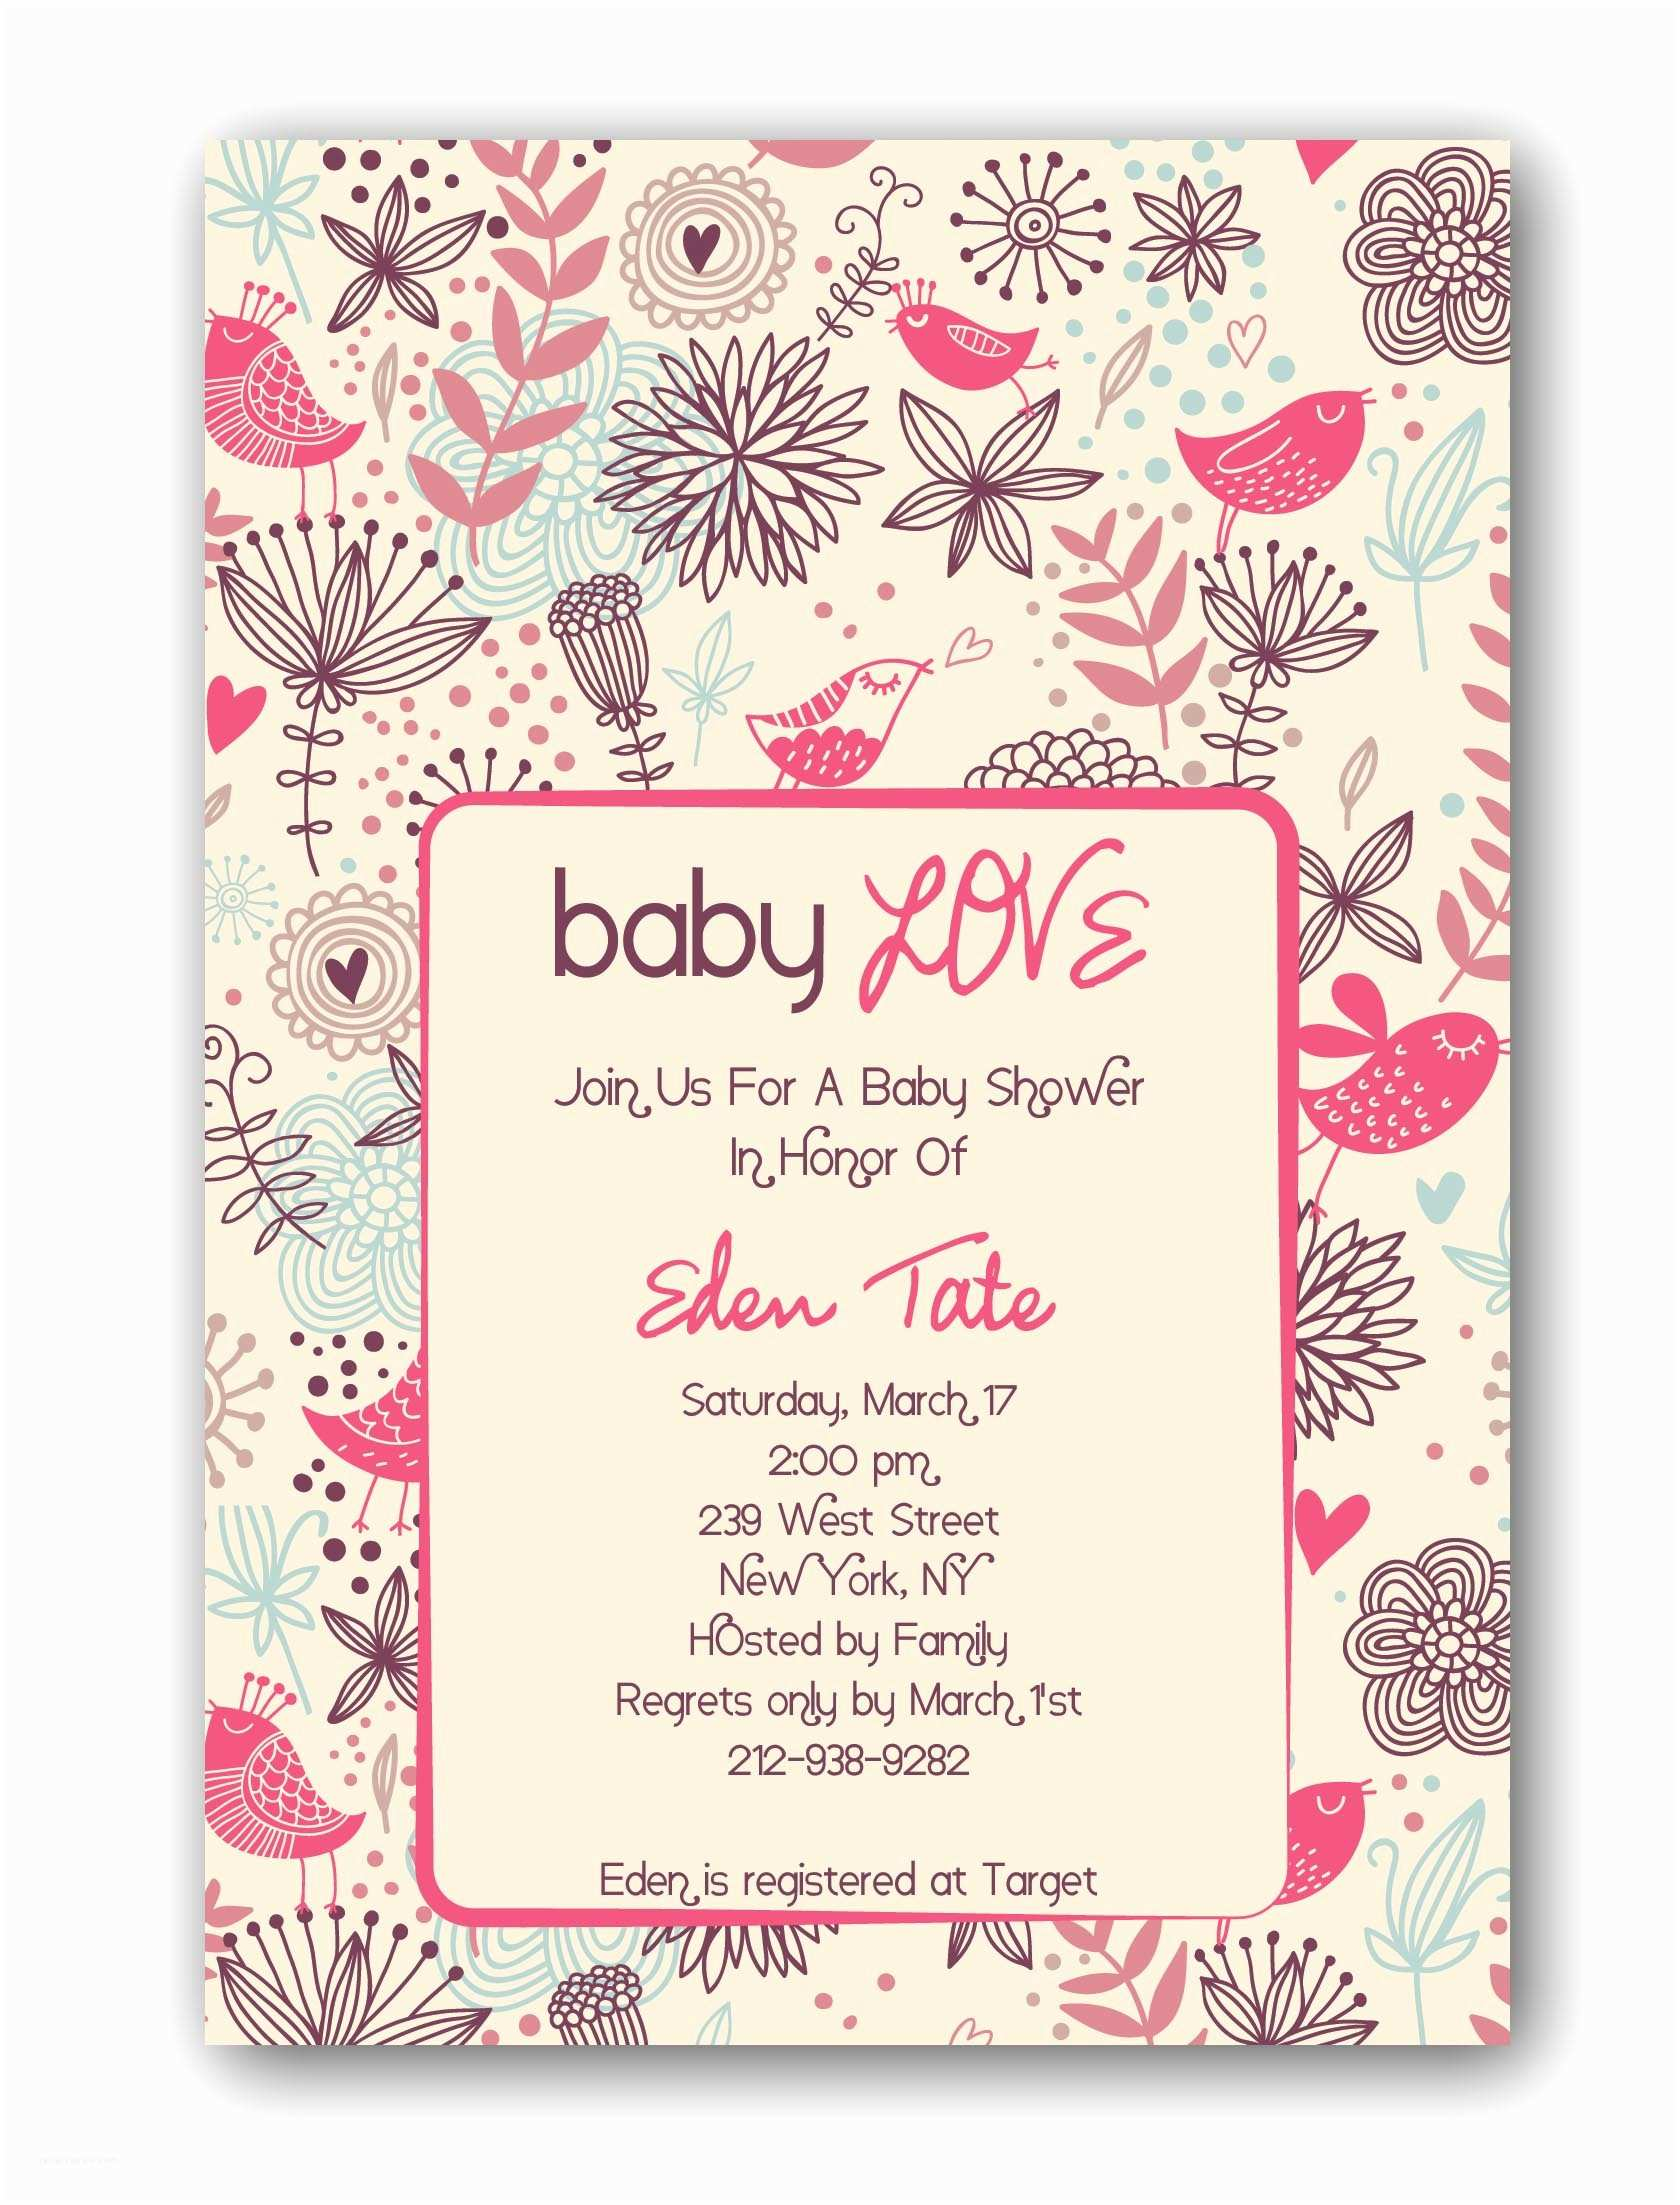 Custom Made Baby Shower Invitations Custom Baby Shower Invitations Free